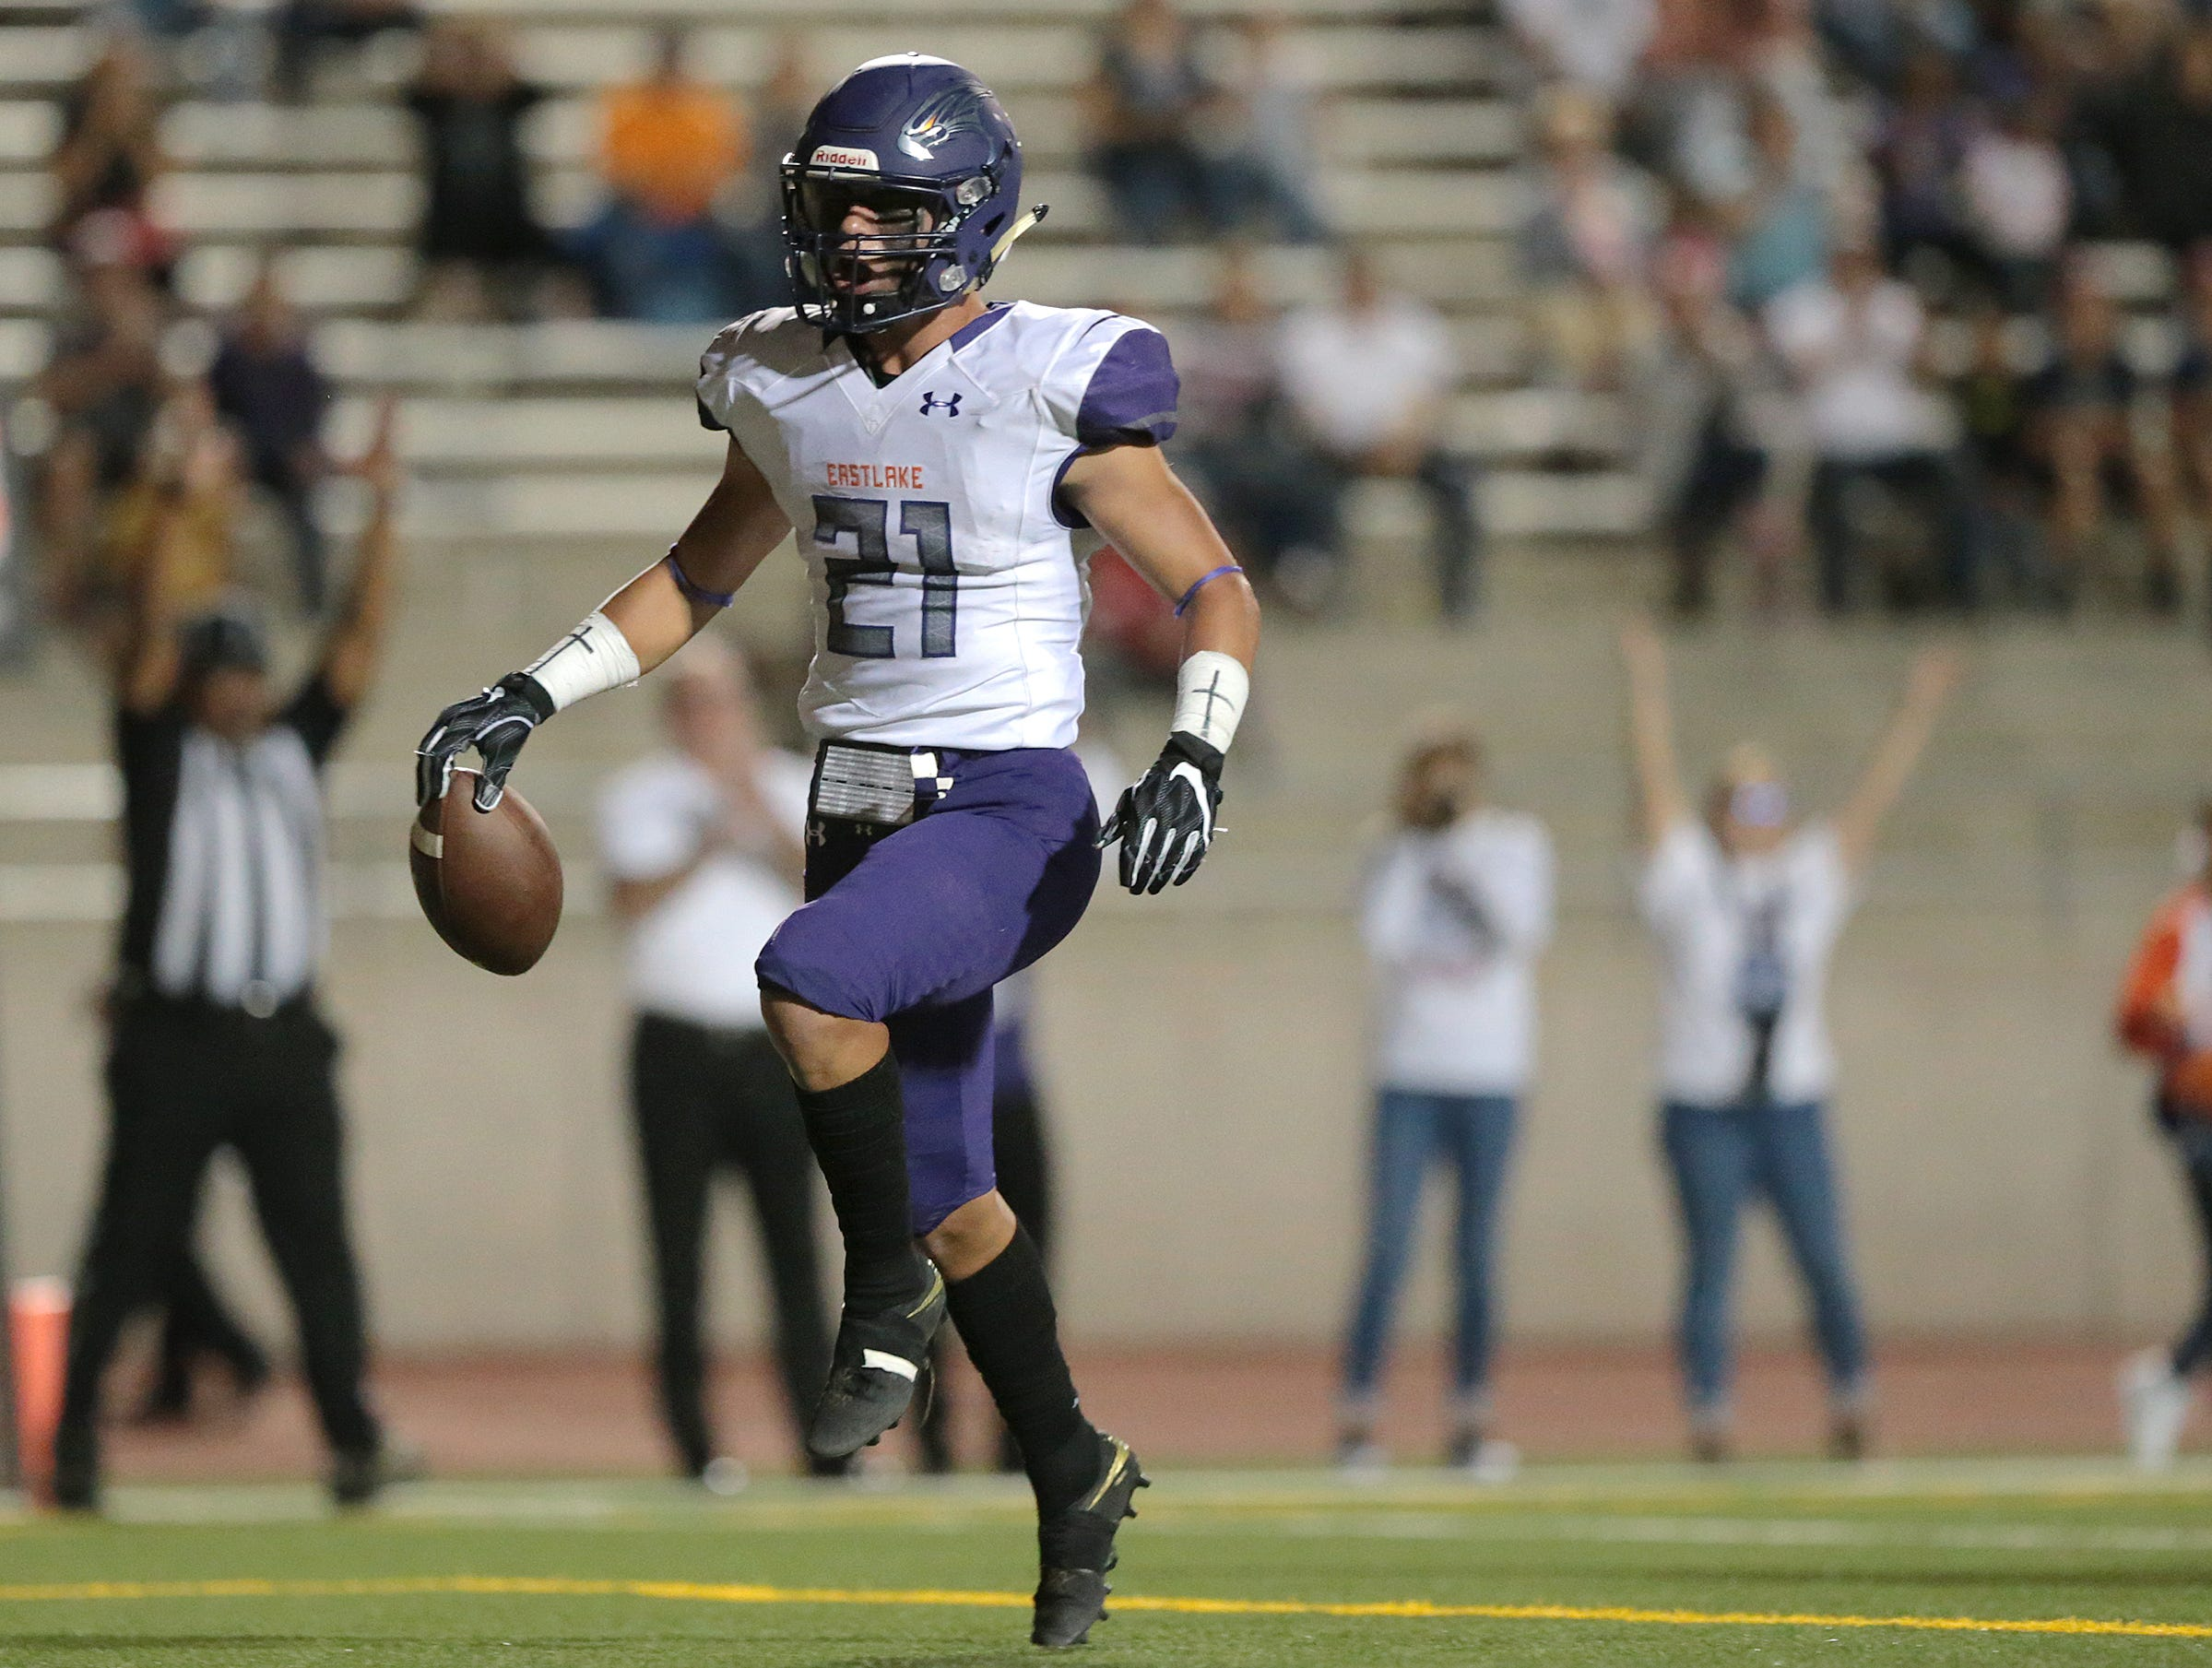 Eastlake wide receiver Keith Rodriguez finds paydirt against Montwood Friday at the SAC.